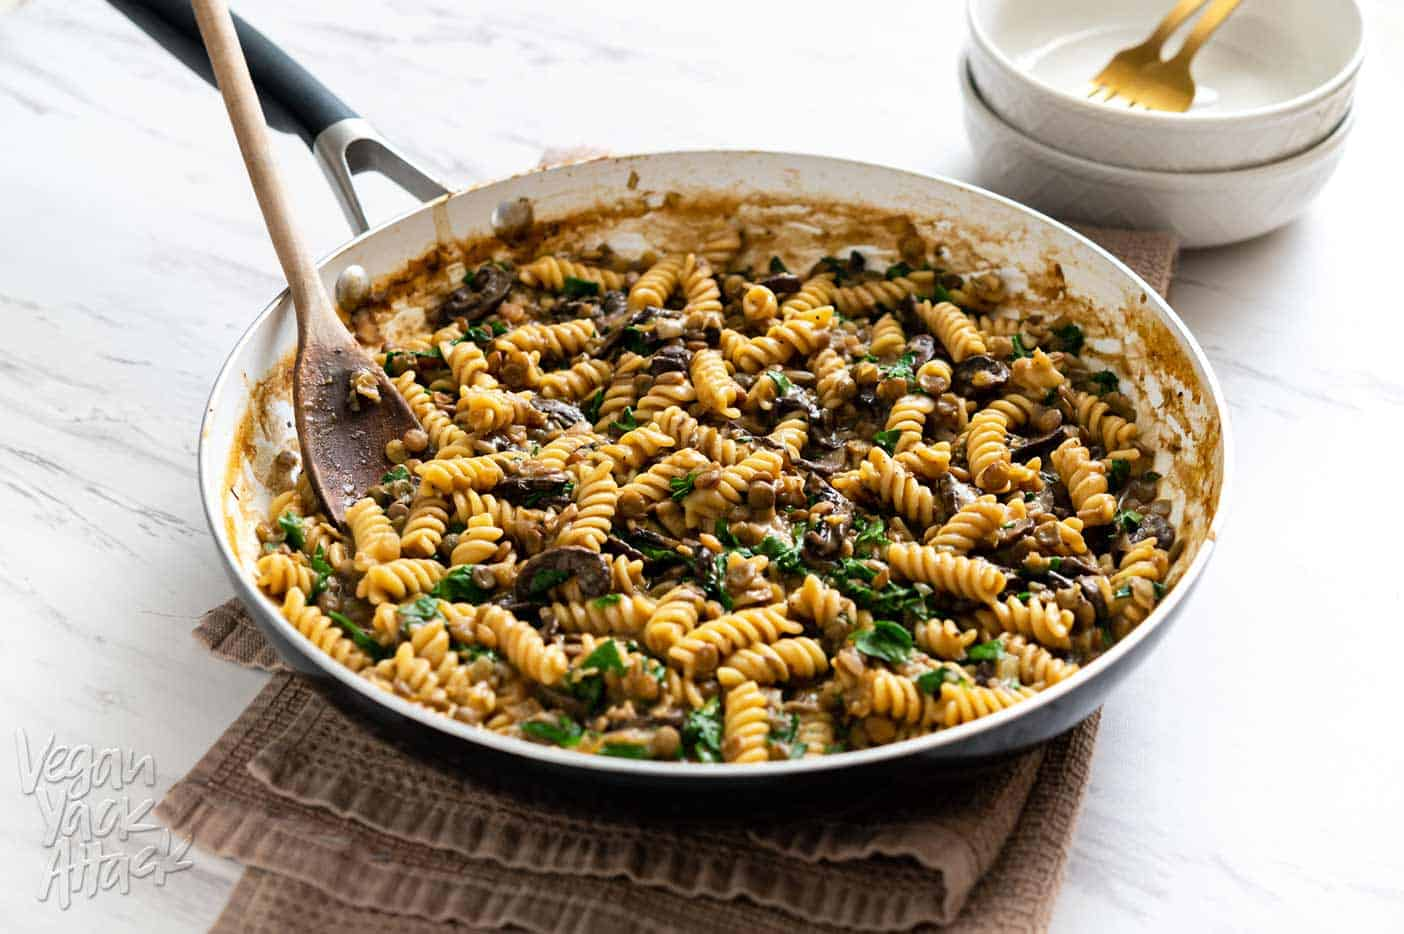 Image of one-pot lentil mushroom pasta in a large pan sitting on a towel